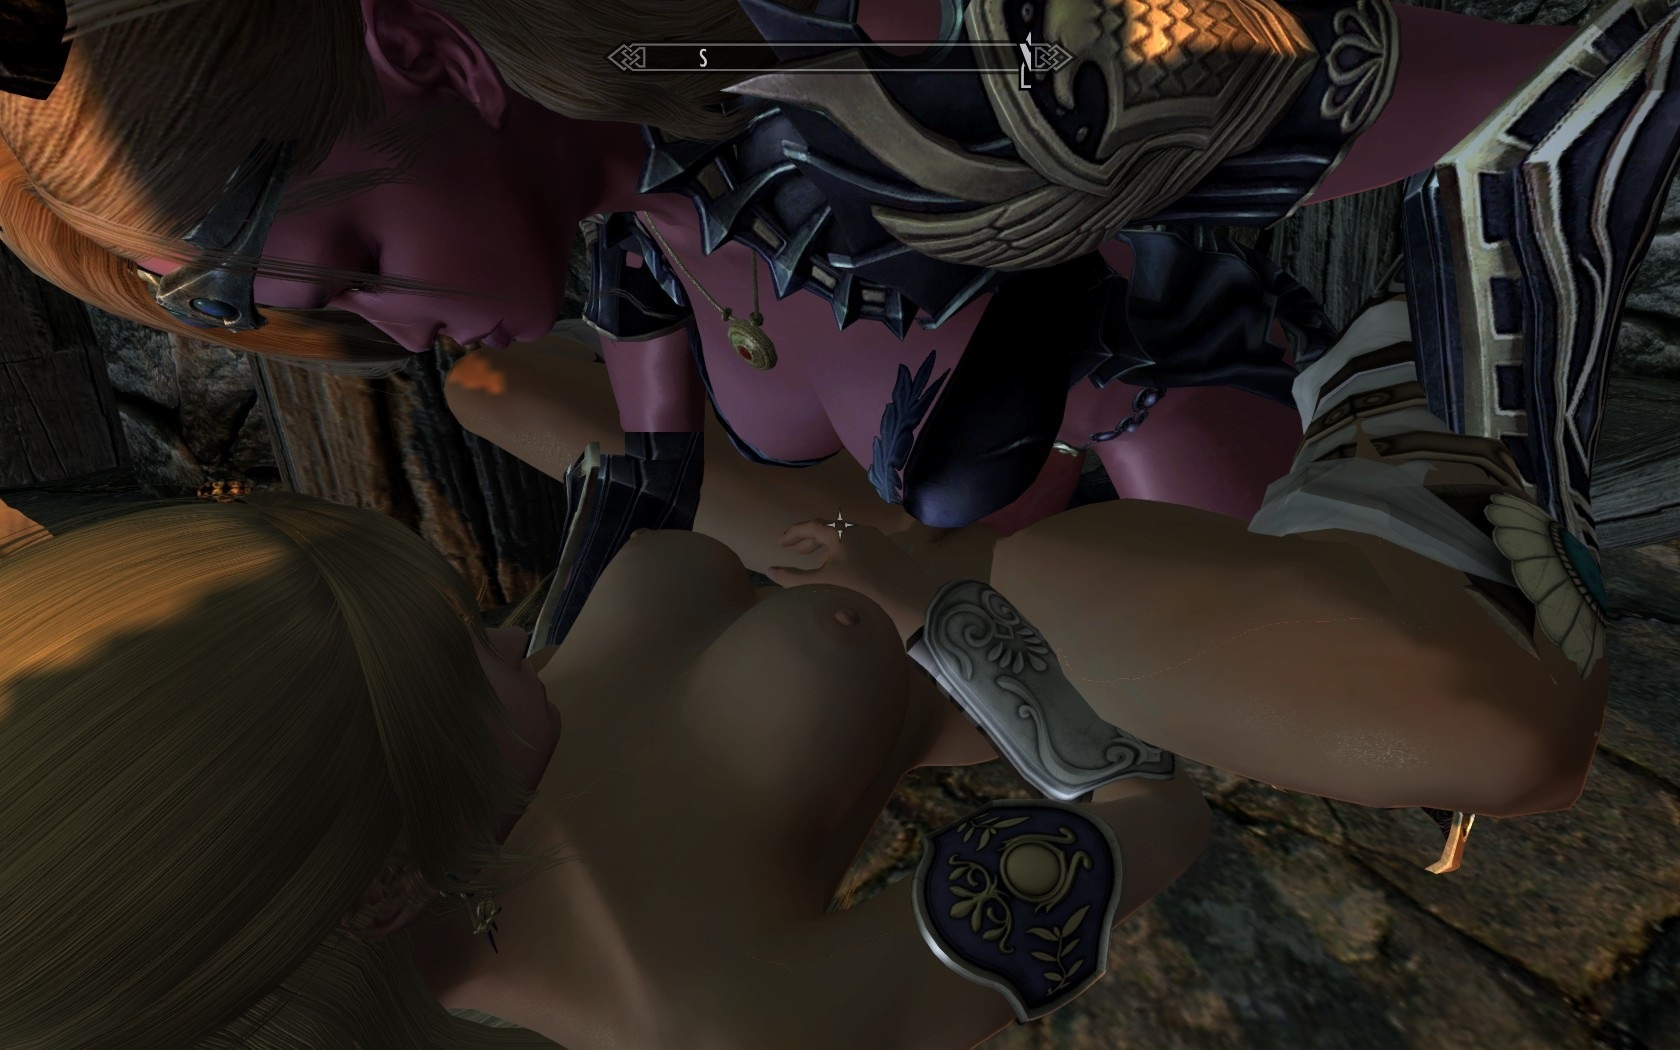 The elder scrolls succubus sex anime galleries